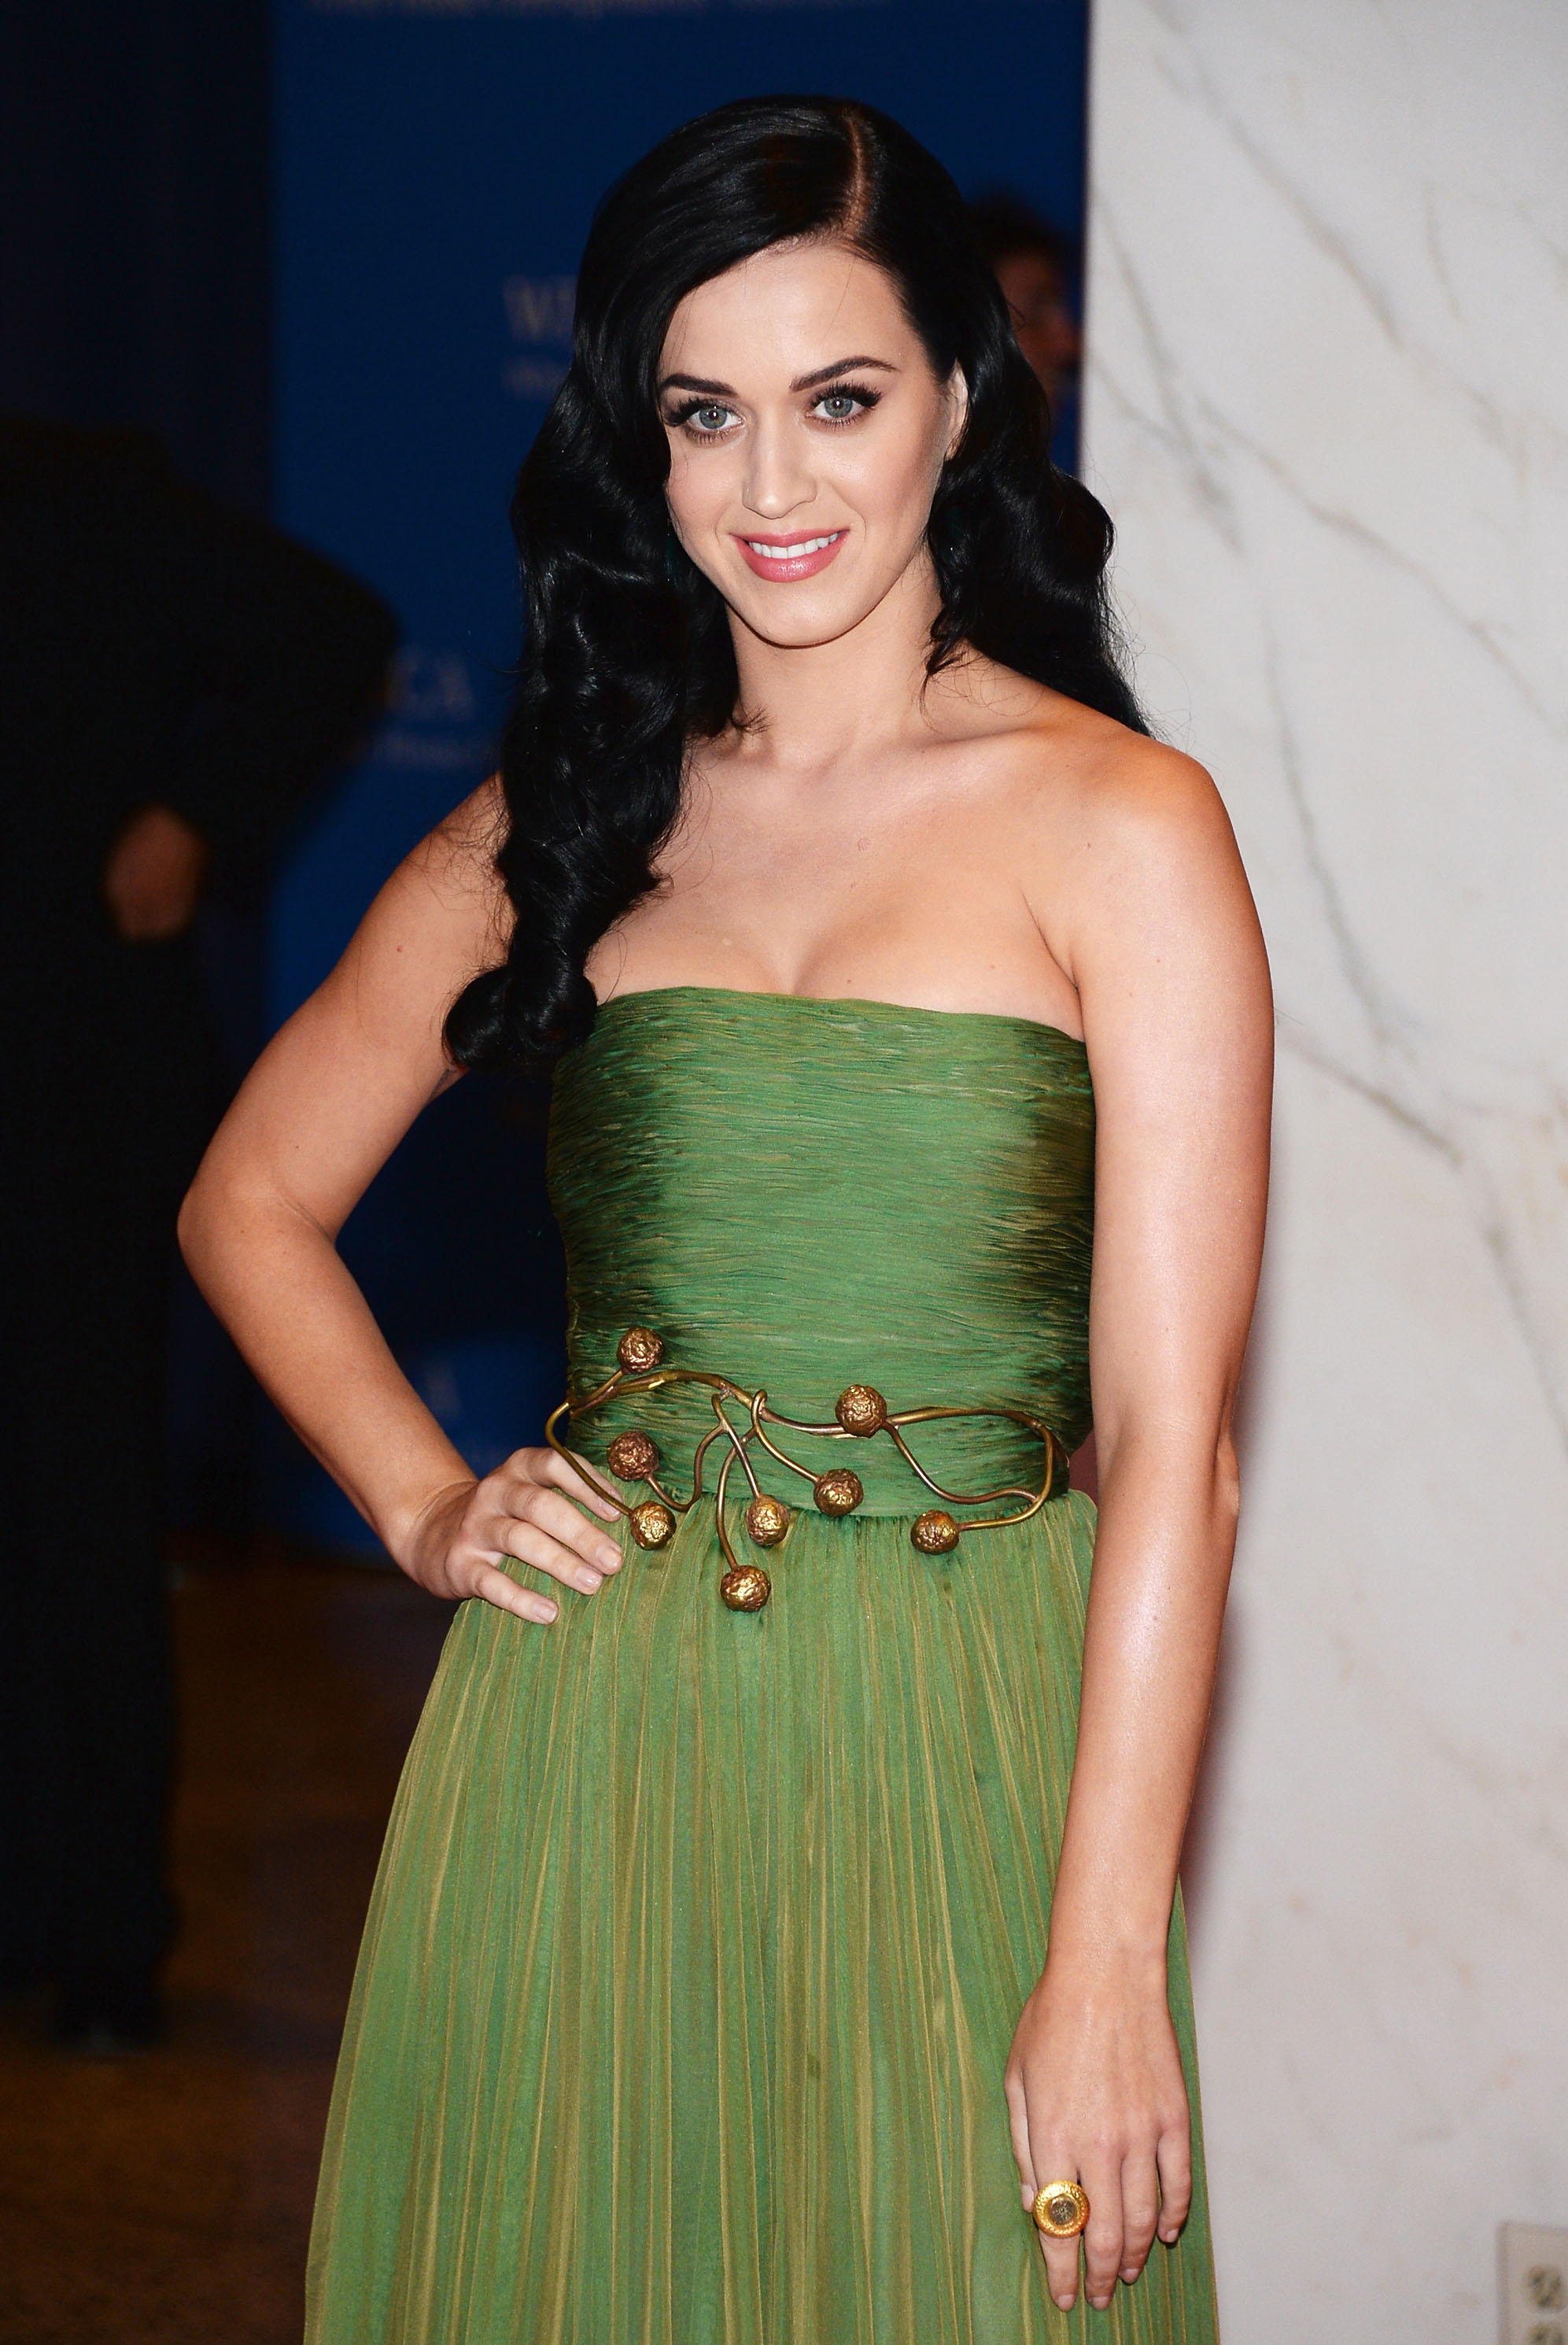 Katy Perry on course to Roar ahead of Lady Gaga in chart battle